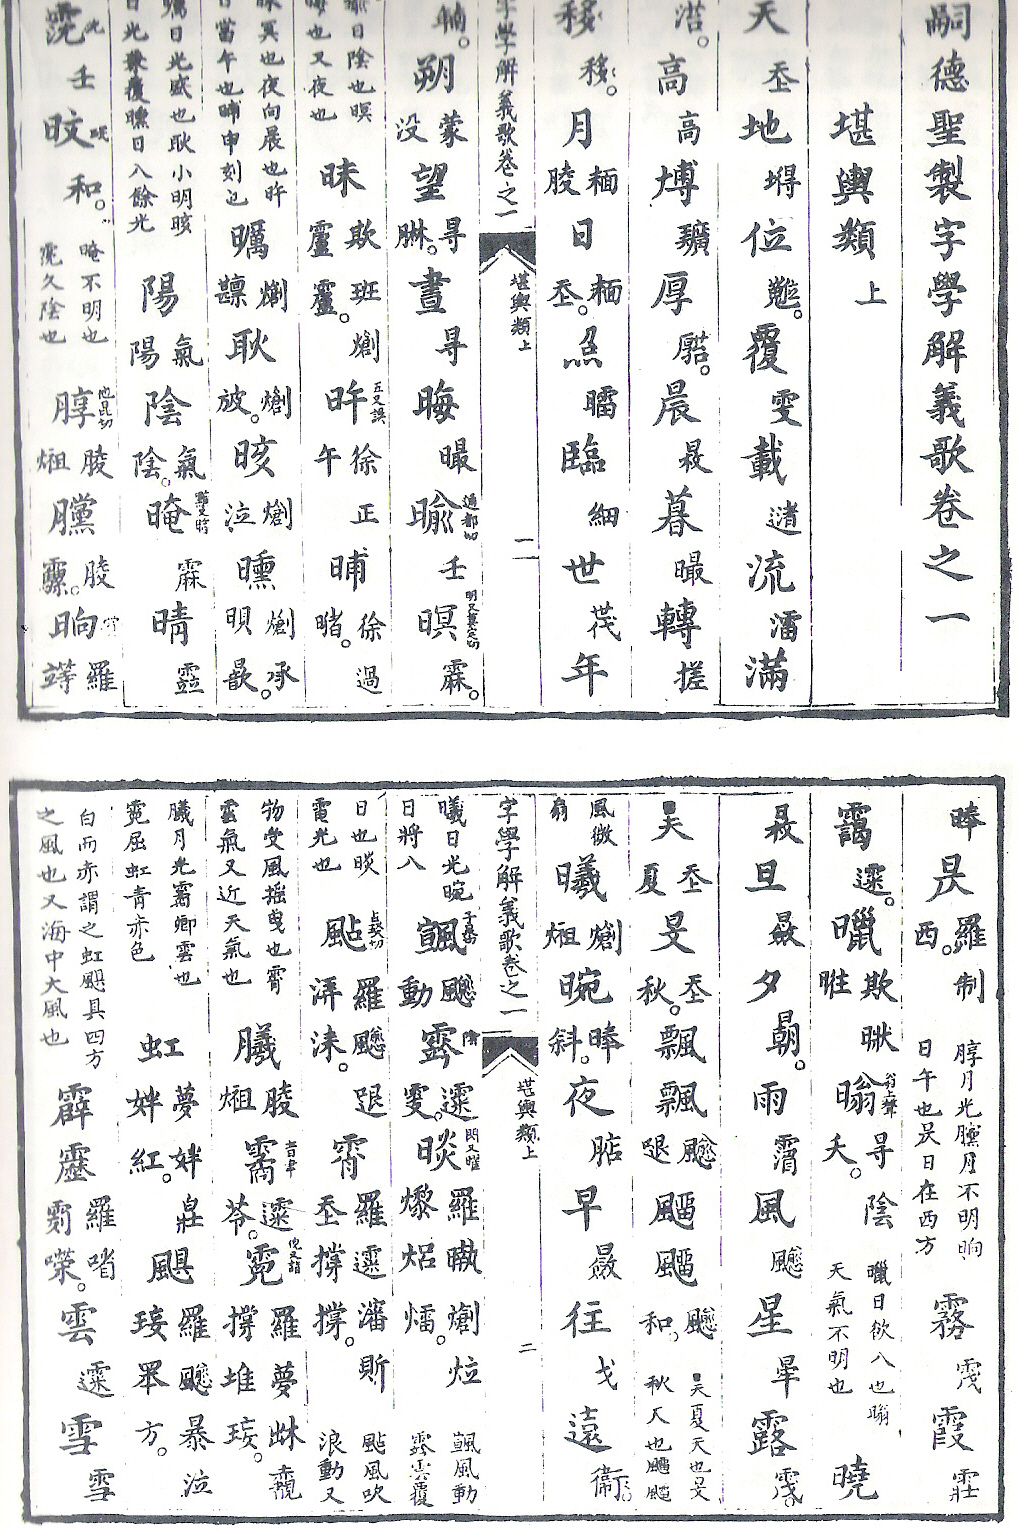 Extinct Sinoform Writing Systems From Chinese History